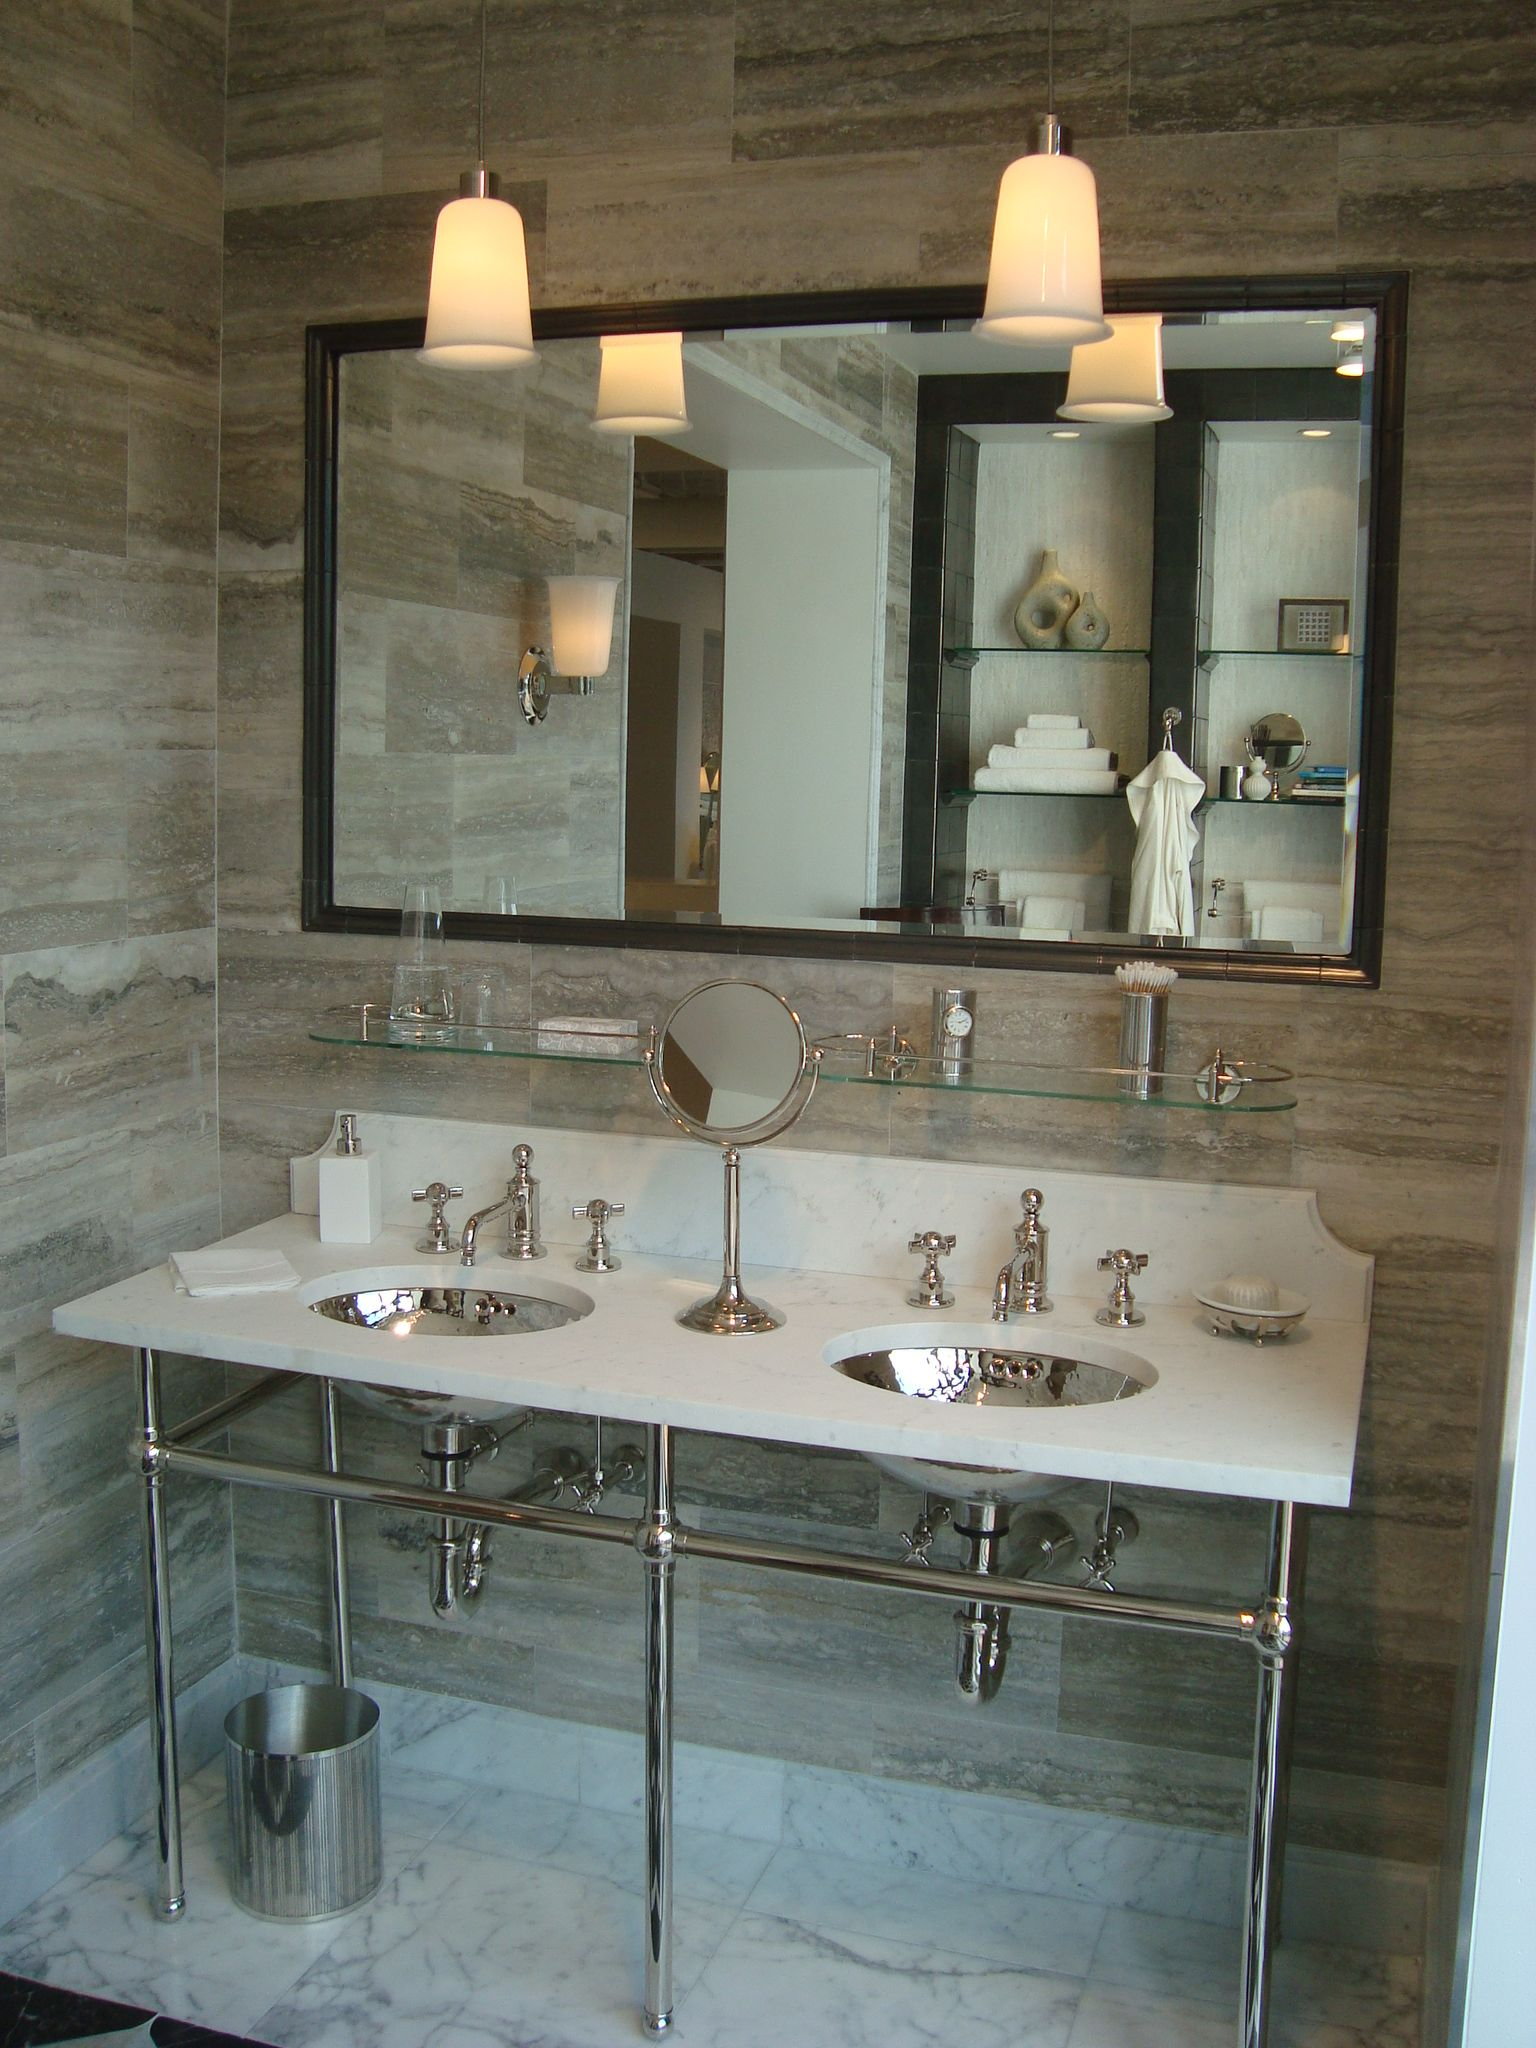 Bathroom Design Denver Captivating Waterworks Miami Showroom Display  Our New Country House Project Design Ideas